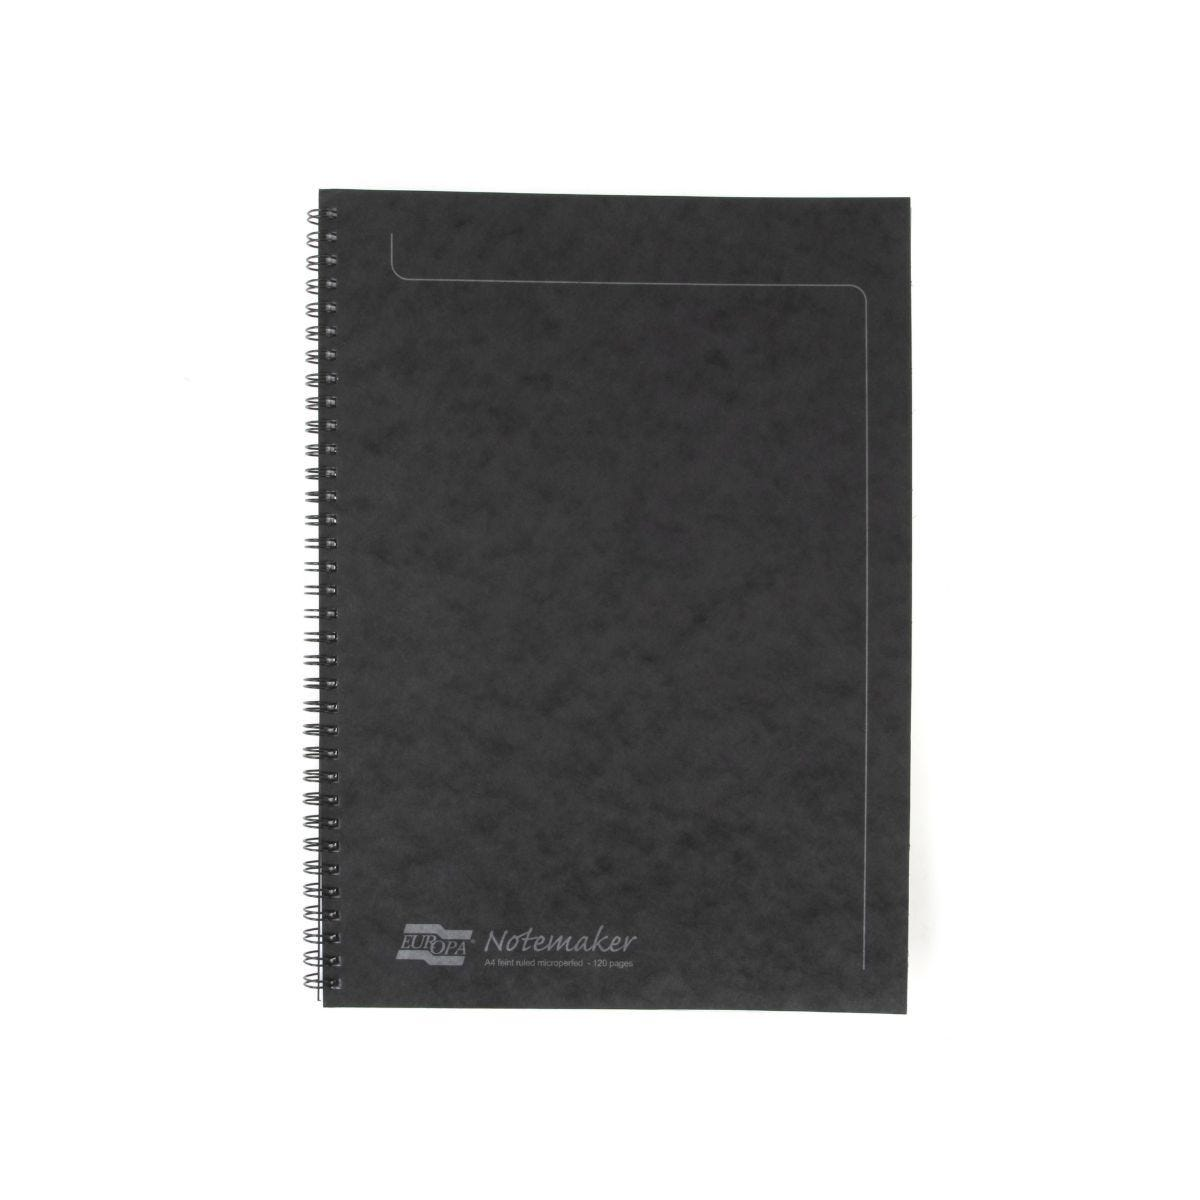 Europa Notemaker A4 Spiralbound Pad Black